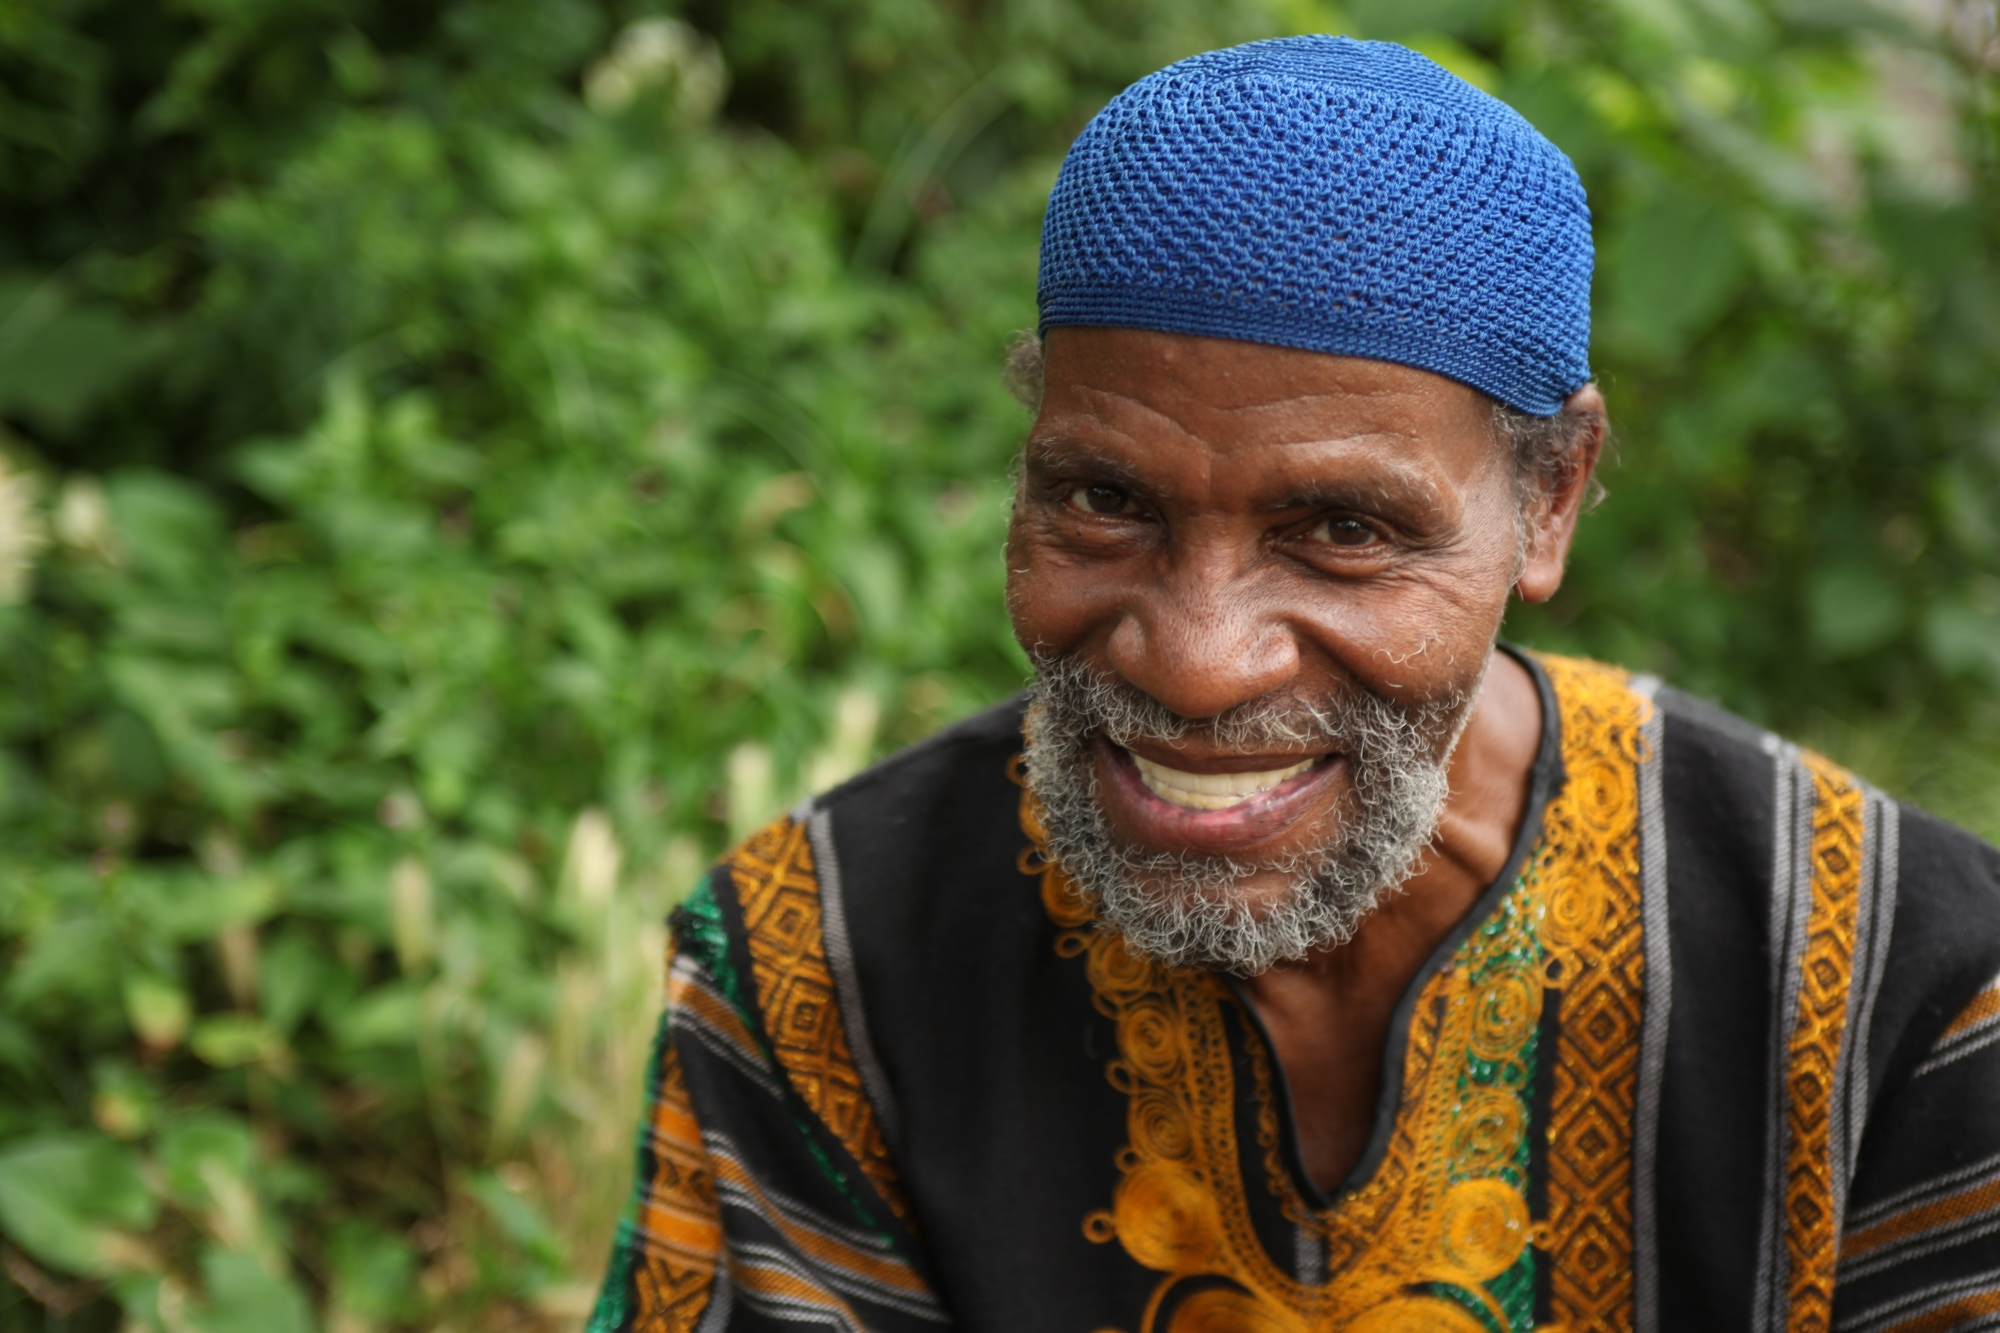 ABIODUN OYEWOLE PHOTO